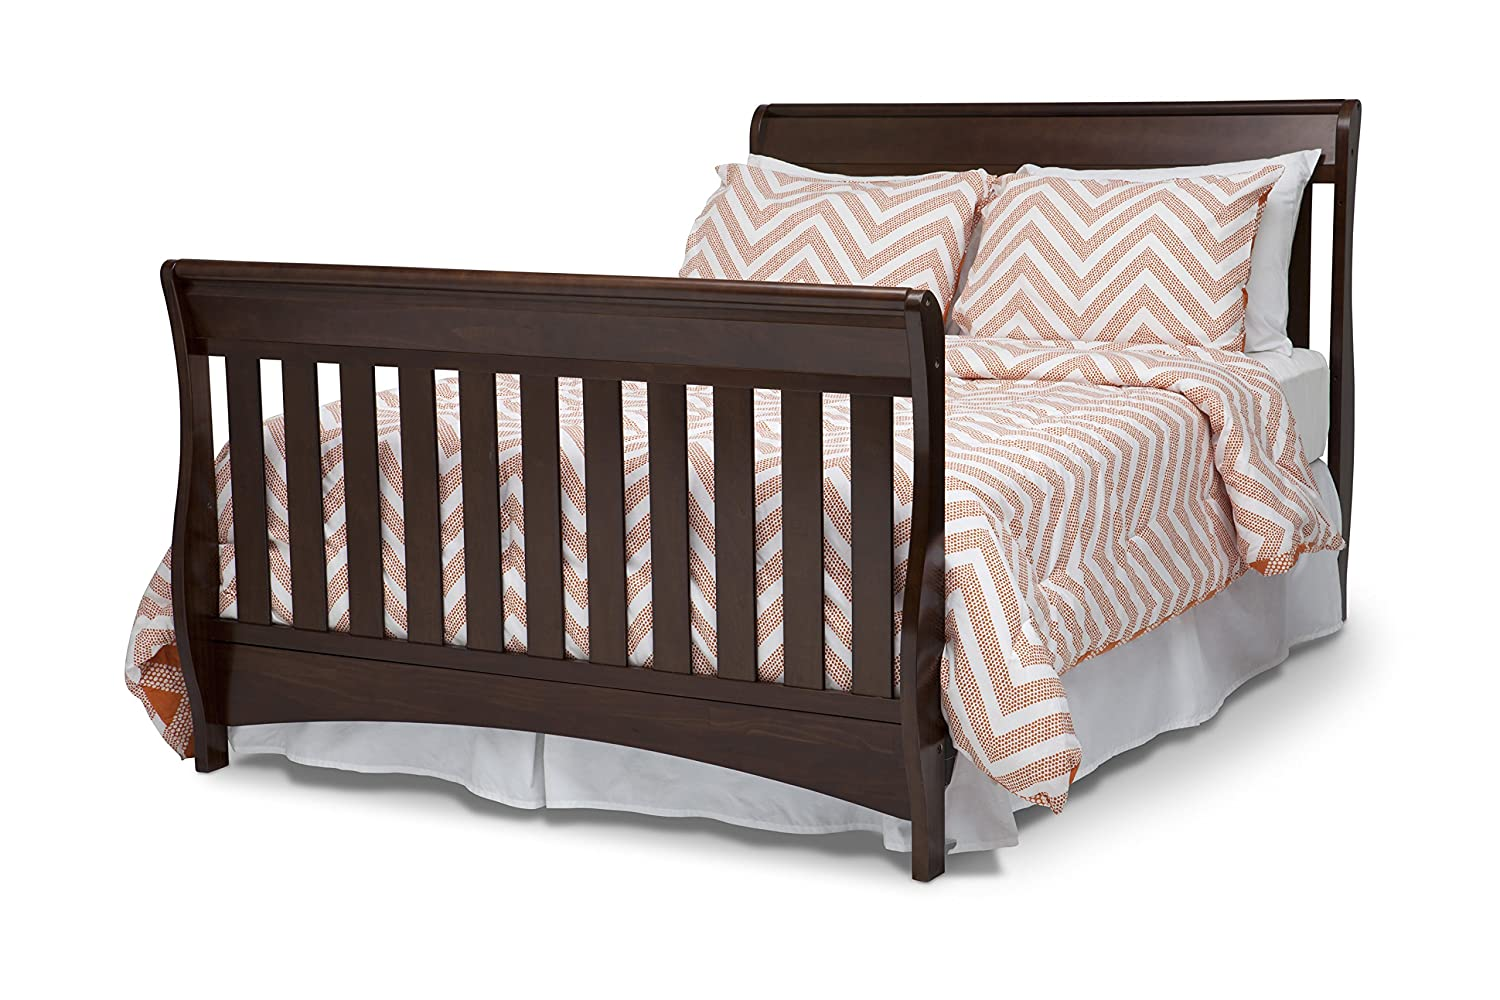 Delta Children Bentley S Series 4 In 1 Crib Chocolate Amazonca Baby